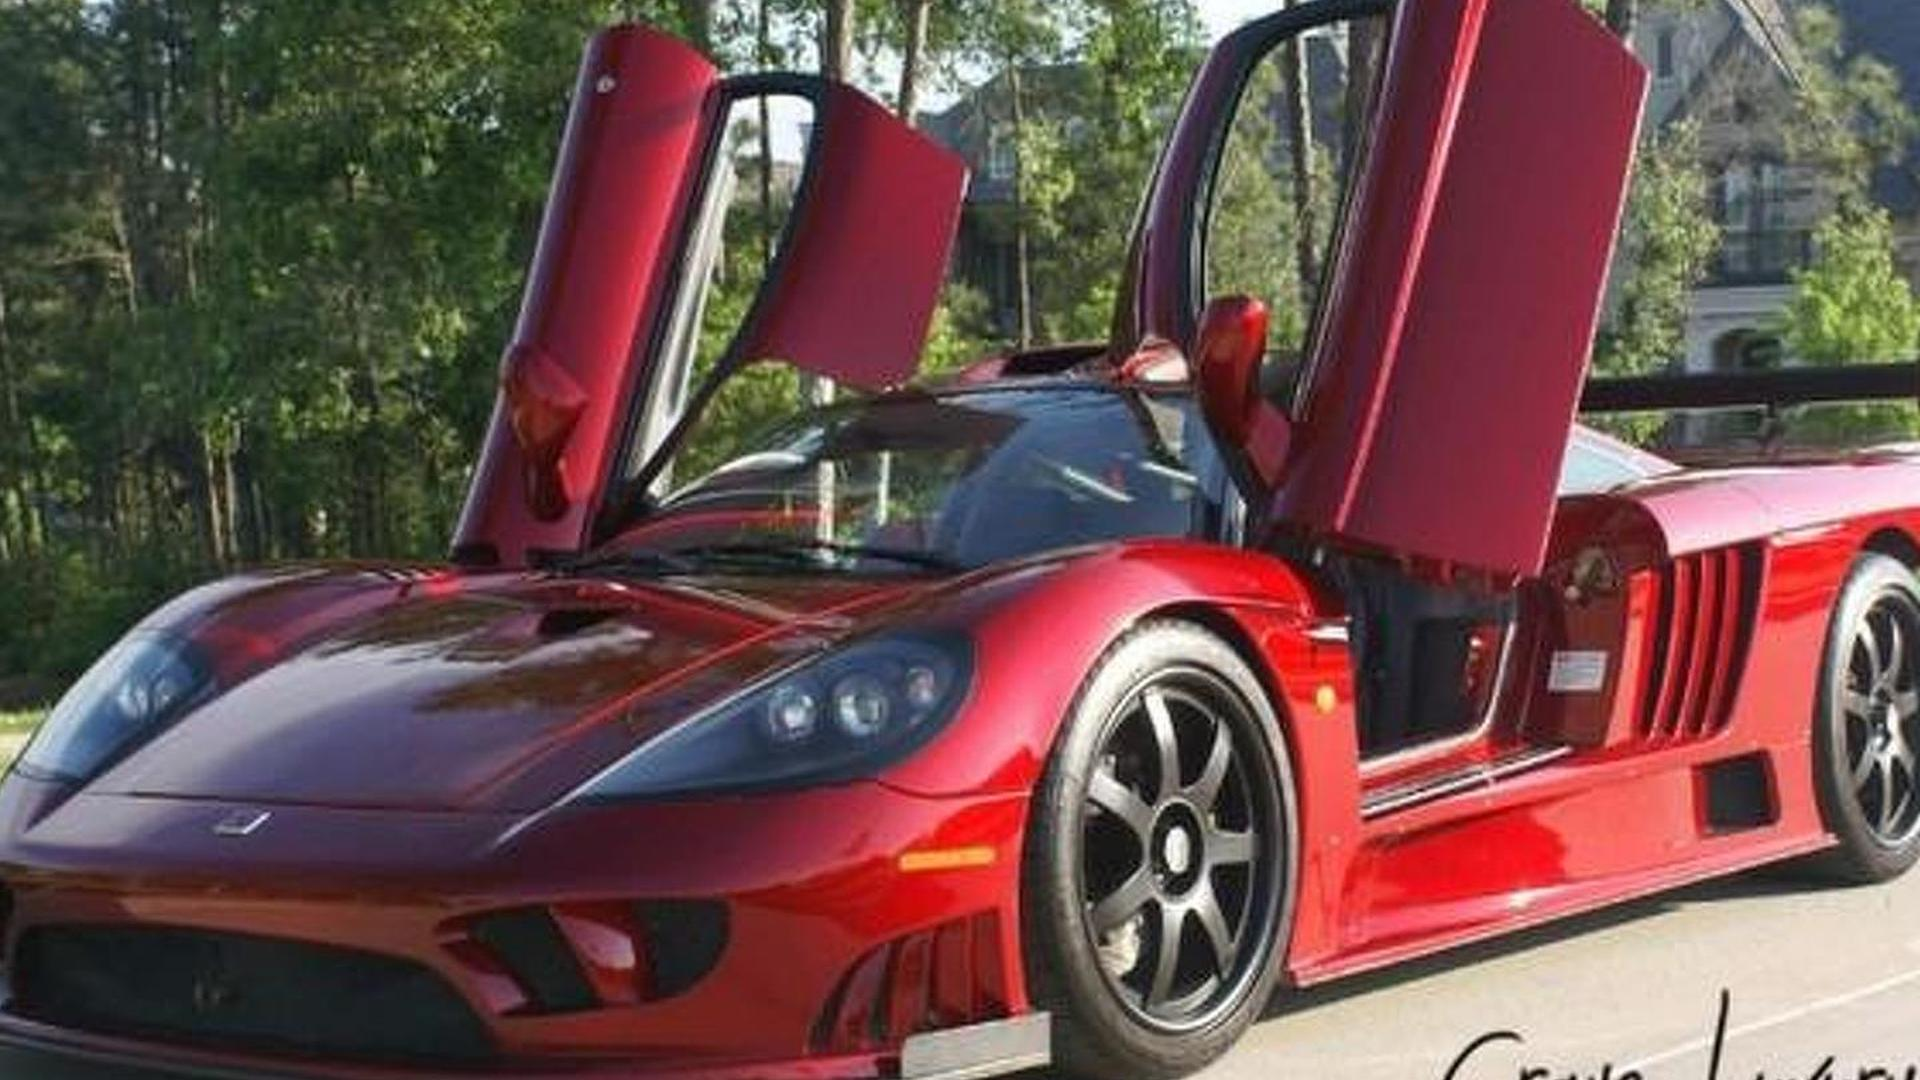 Saleen S7 For Sale >> Saleen S7 Twin Turbo With 1000 Hp Up For Sale